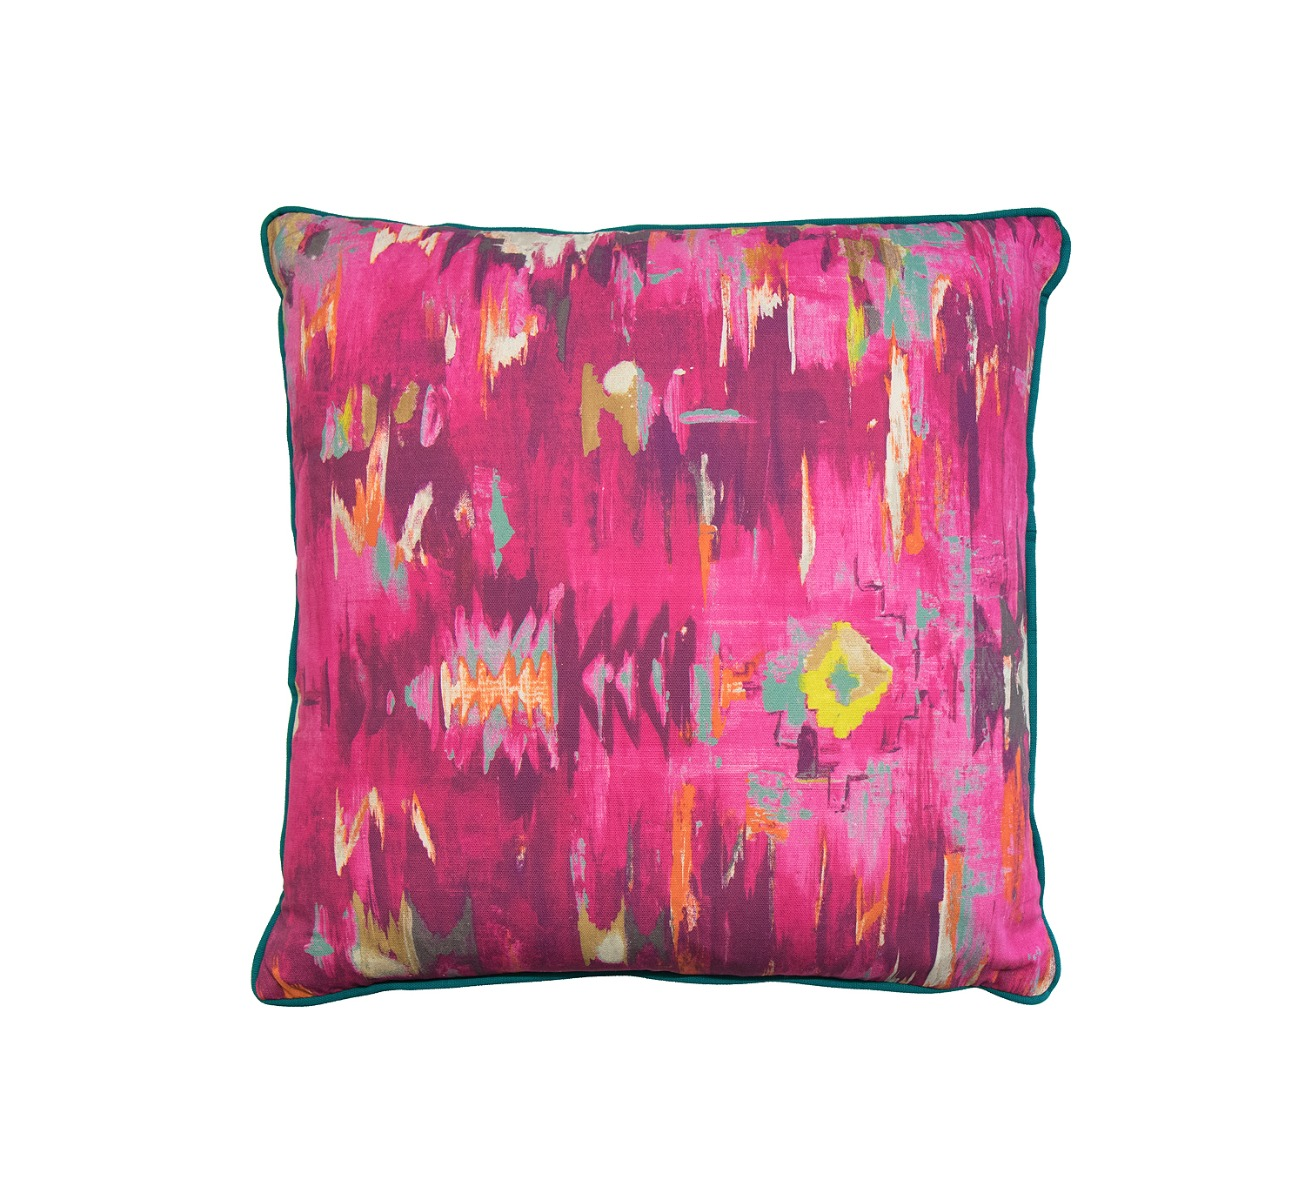 Cosy Home Office: Abstract Pink And Teal Cushion